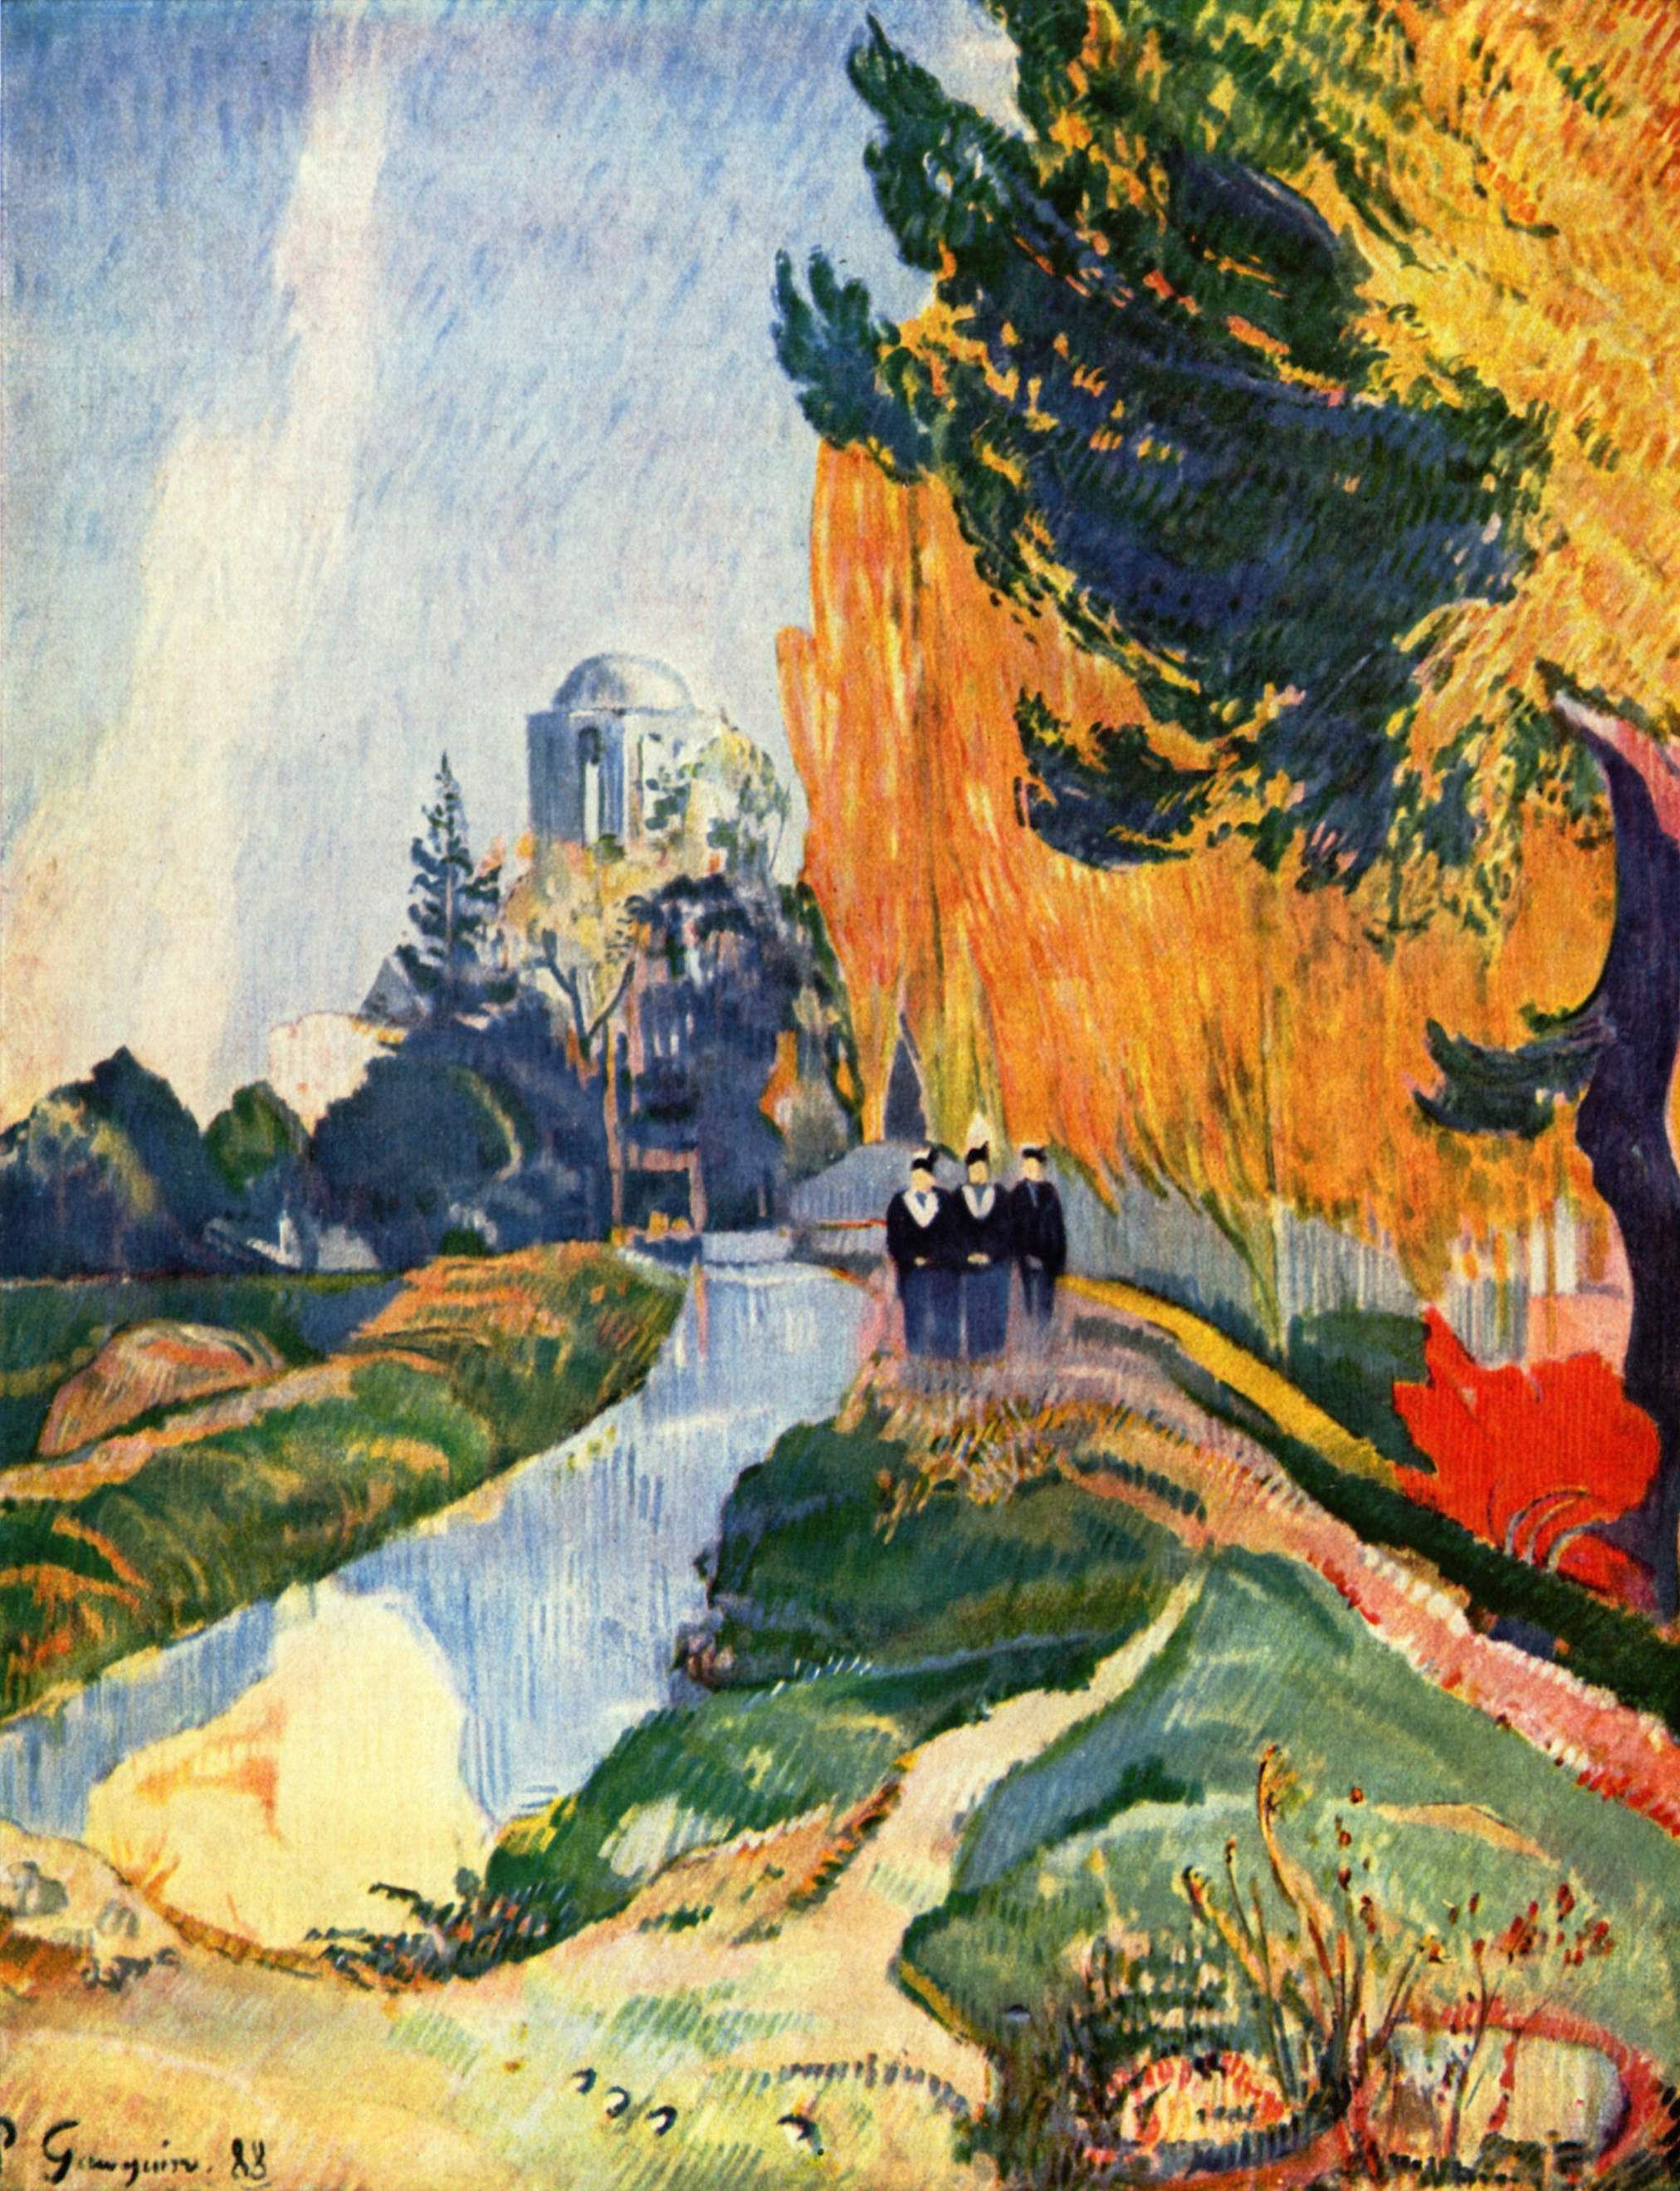 File:Paul Gauguin 085.jpg - Wikimedia Commons